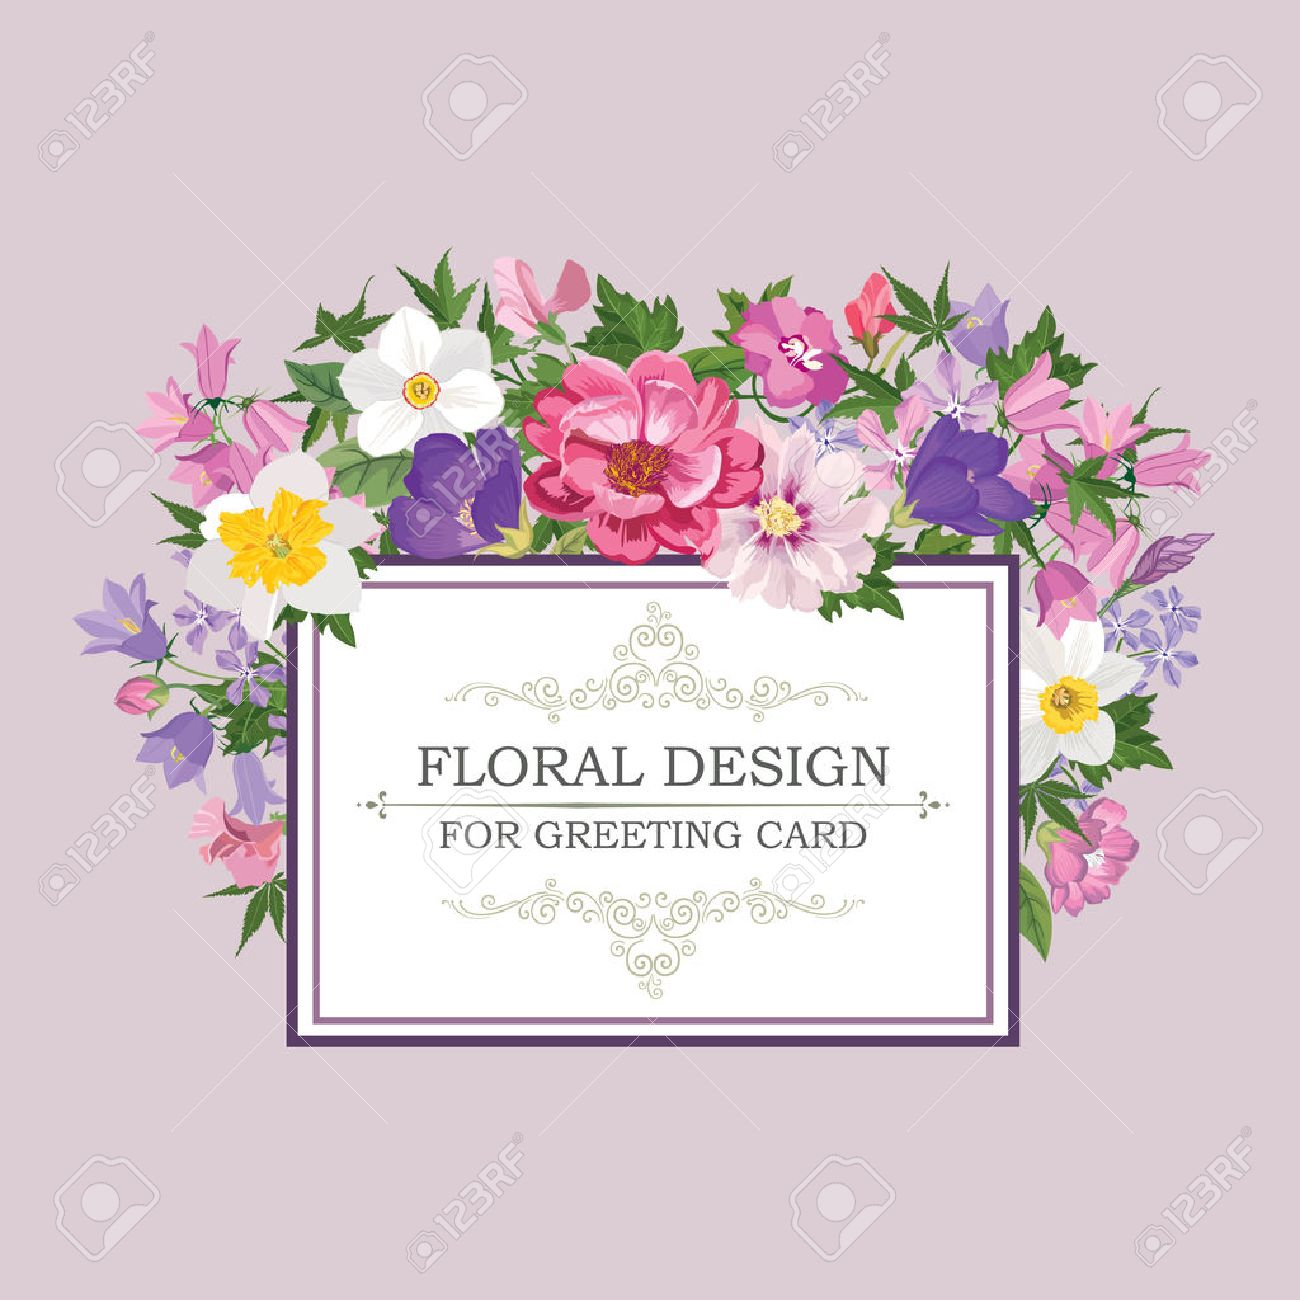 Floral frame with summer flowers. Floral bouquet pattern. Vintage Greeting Card with flowers. Watercolor flourish border. Floral background. Stock Vector - 46922009